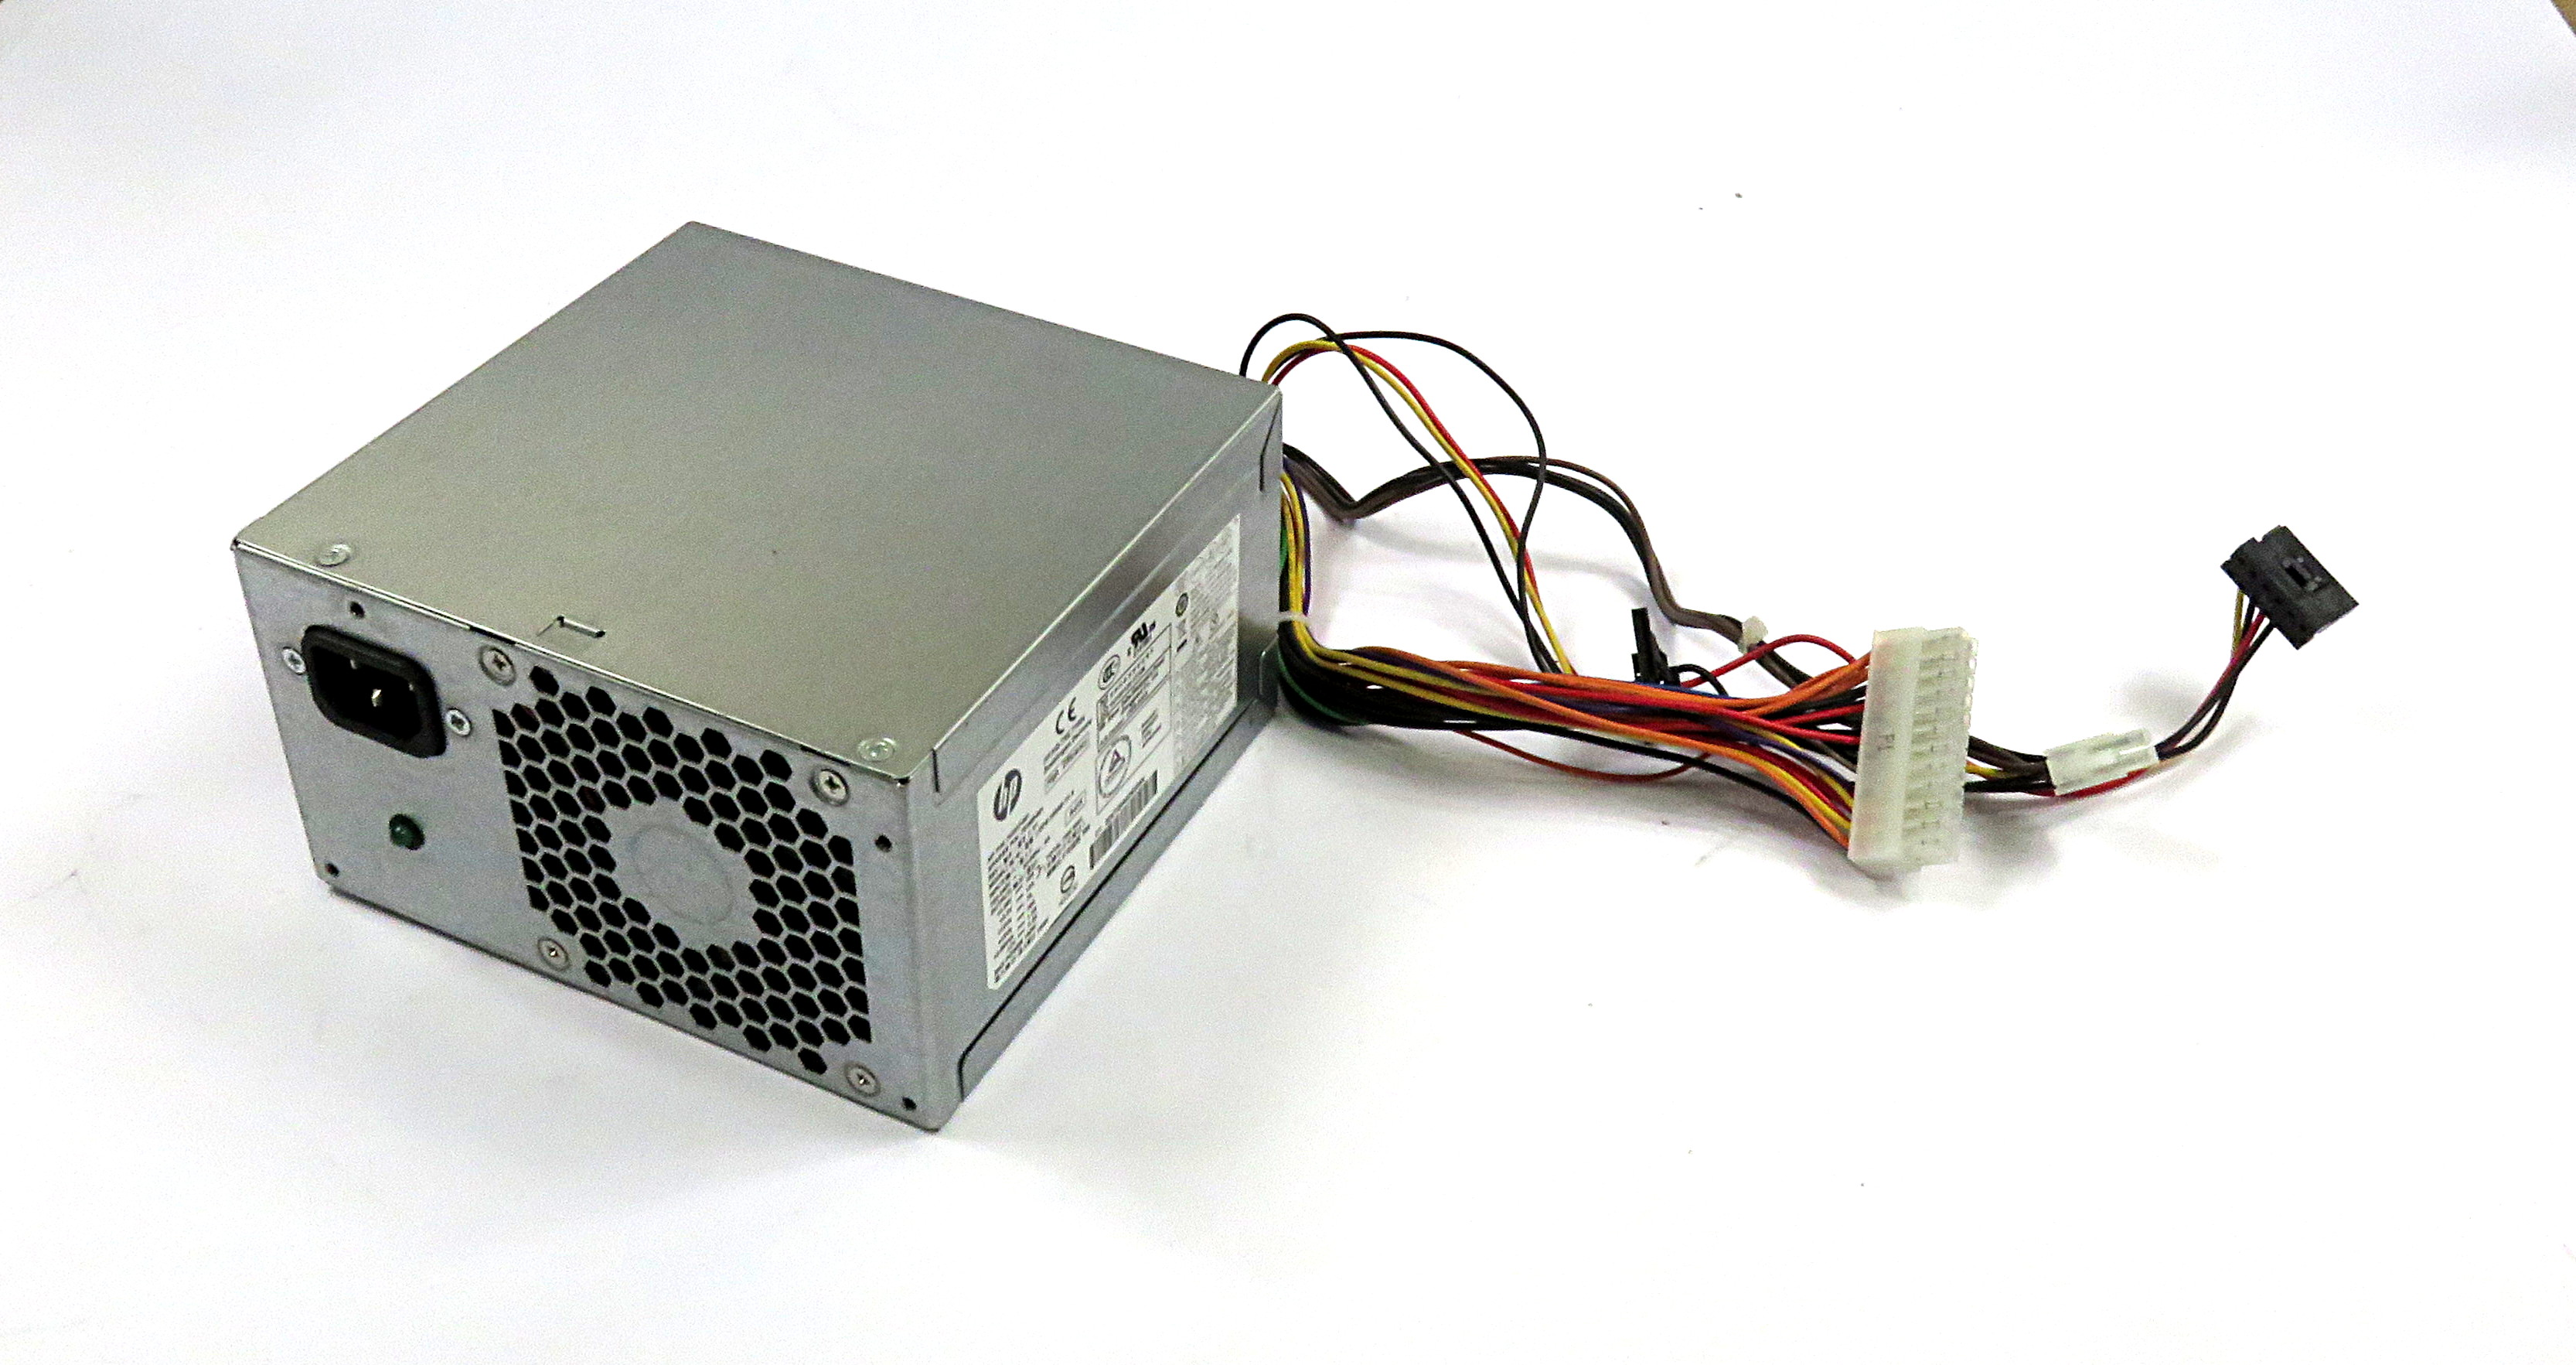 HP 742317-001 DPS-180AB-15 A 180W 24-Pin ATX Power Supply - SPS: 751589-001